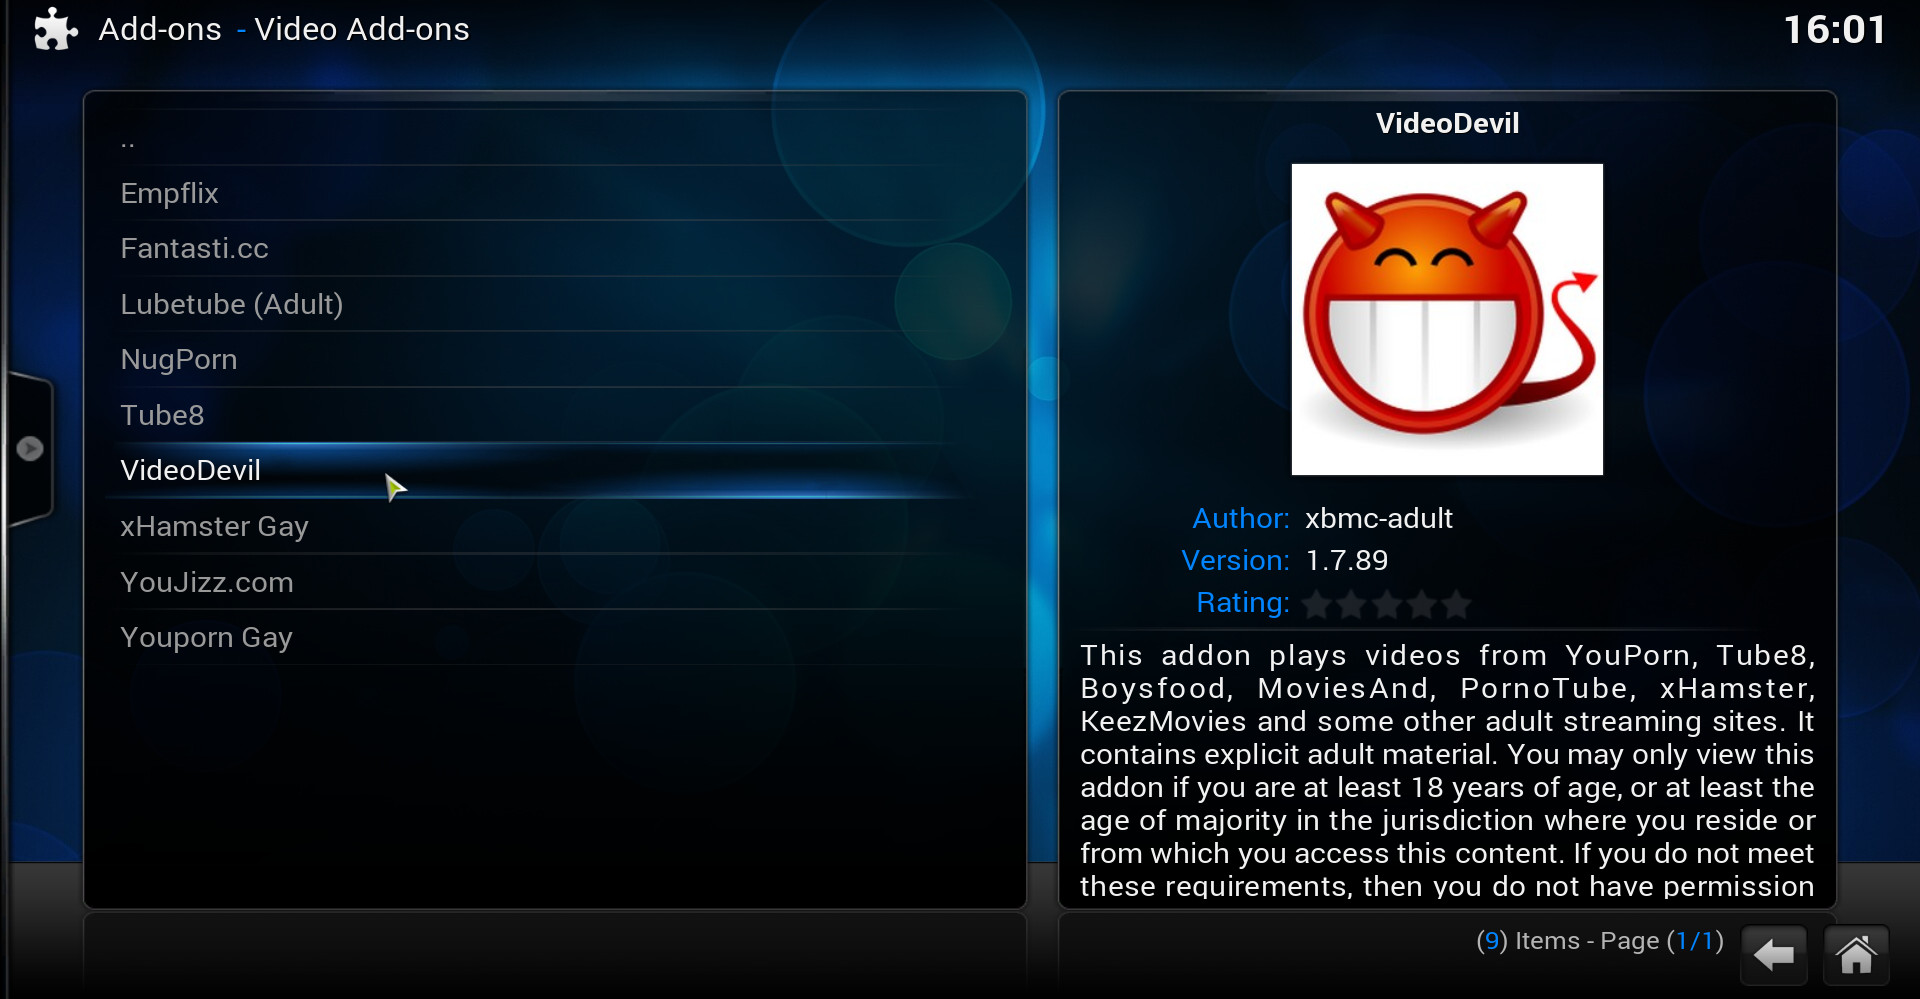 How To Install VideoDevil Add-on On Kodi - Adults Only